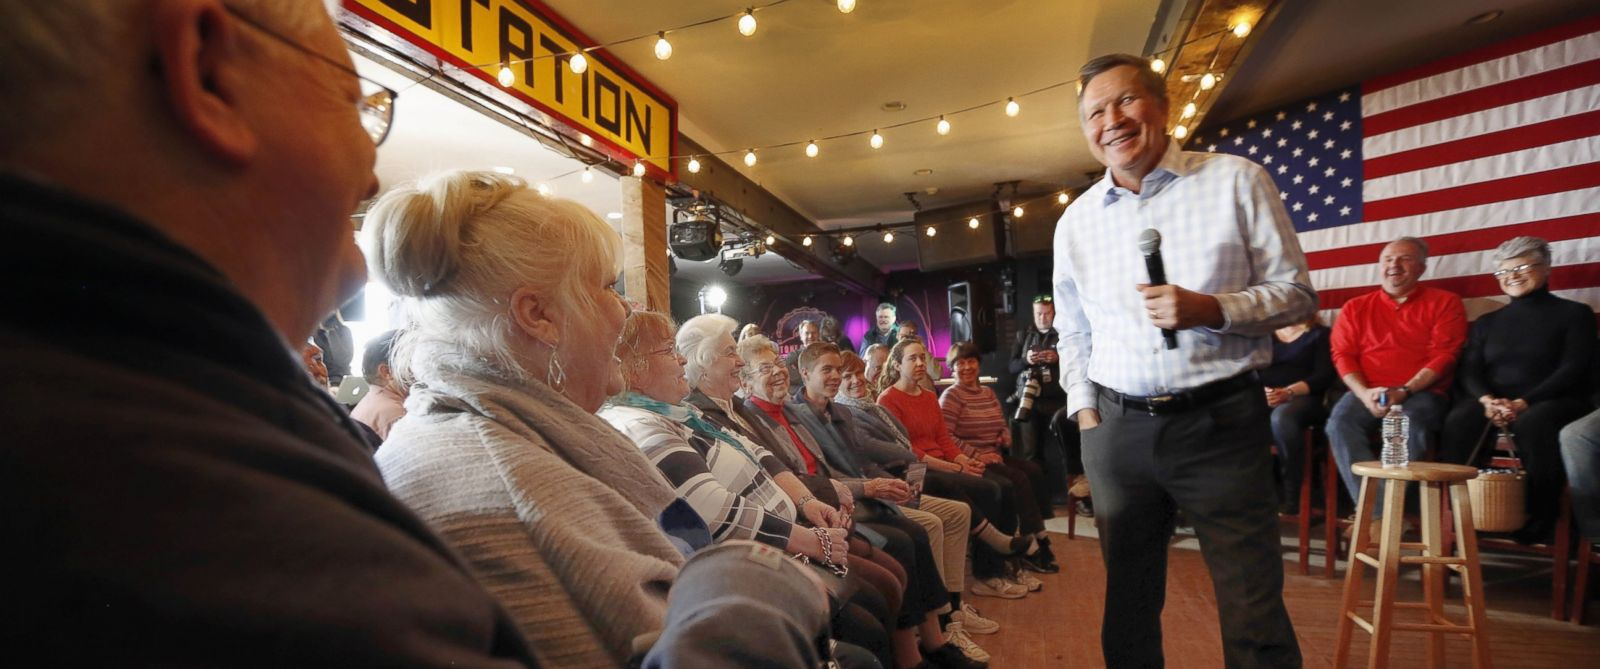 PHOTO: Republican presidential candidate Gov. John Kasich speaks to voters during a campaign stop at a music club tavern called the Stone Church, Jan. 25, 2016, in Newmarket, N.H.